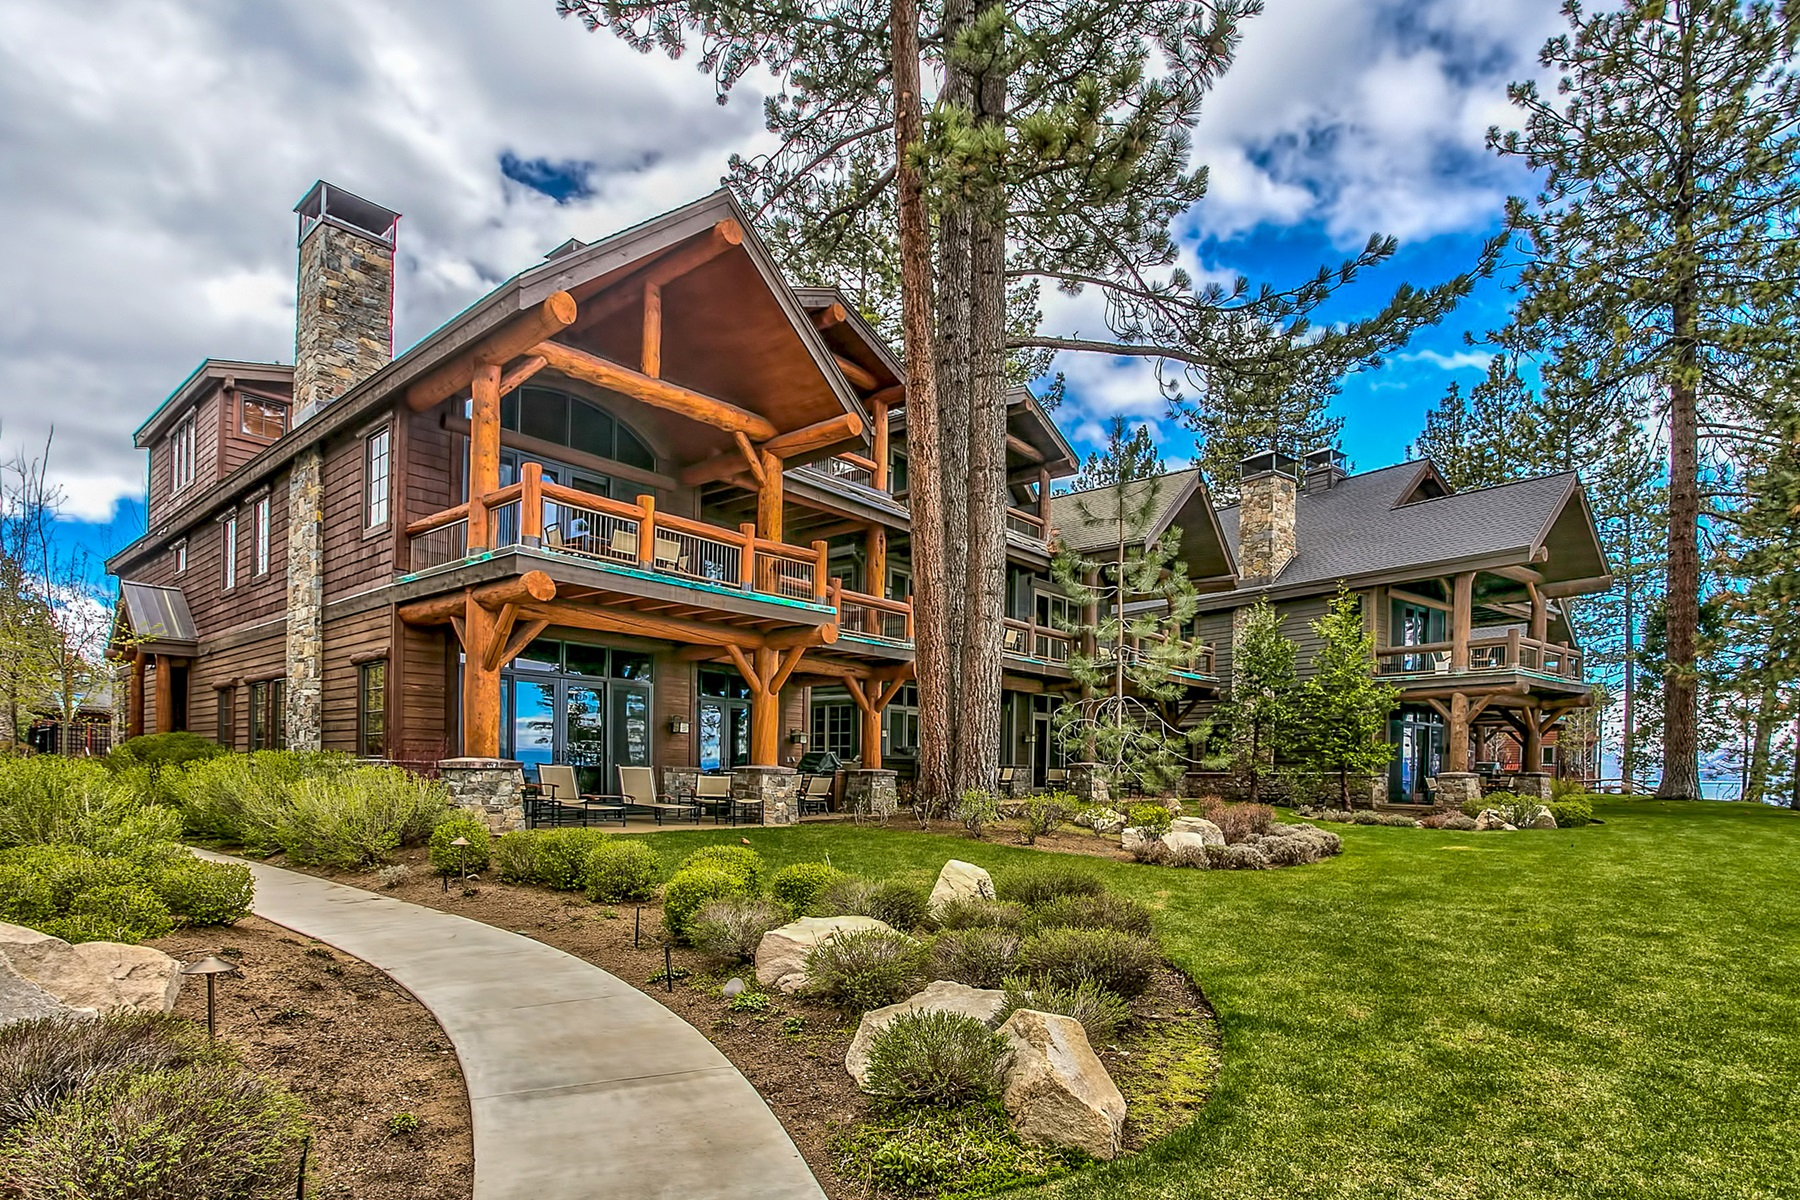 Single Family Home for Active at Sierra Shores 3371 Lake Tahoe Blvd #8 South Lake Tahoe, California 96150 United States